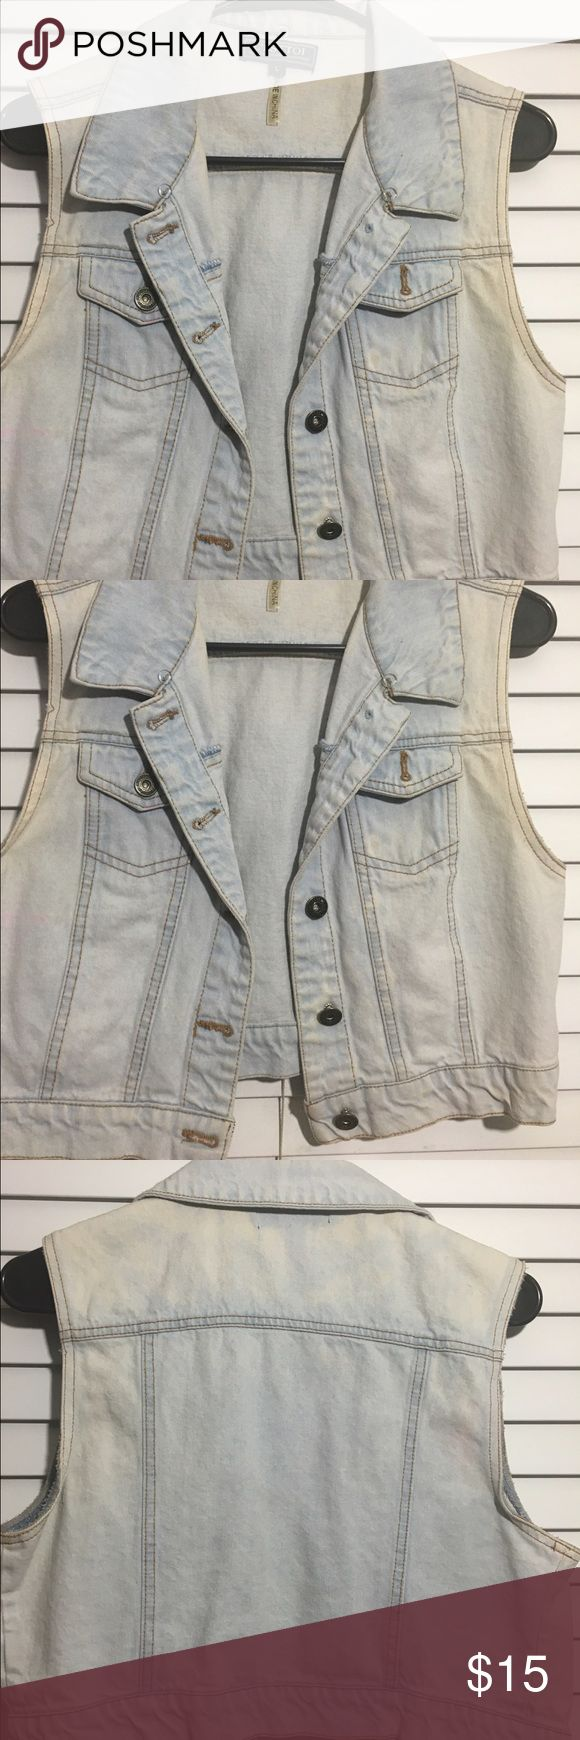 Denim Light Blue Slightly Distressed Vest This vest is denim, slightly distressed, and is a snug fit so a Large will fit like a Medium. It has only been worn a few times. Jackets & Coats Vests